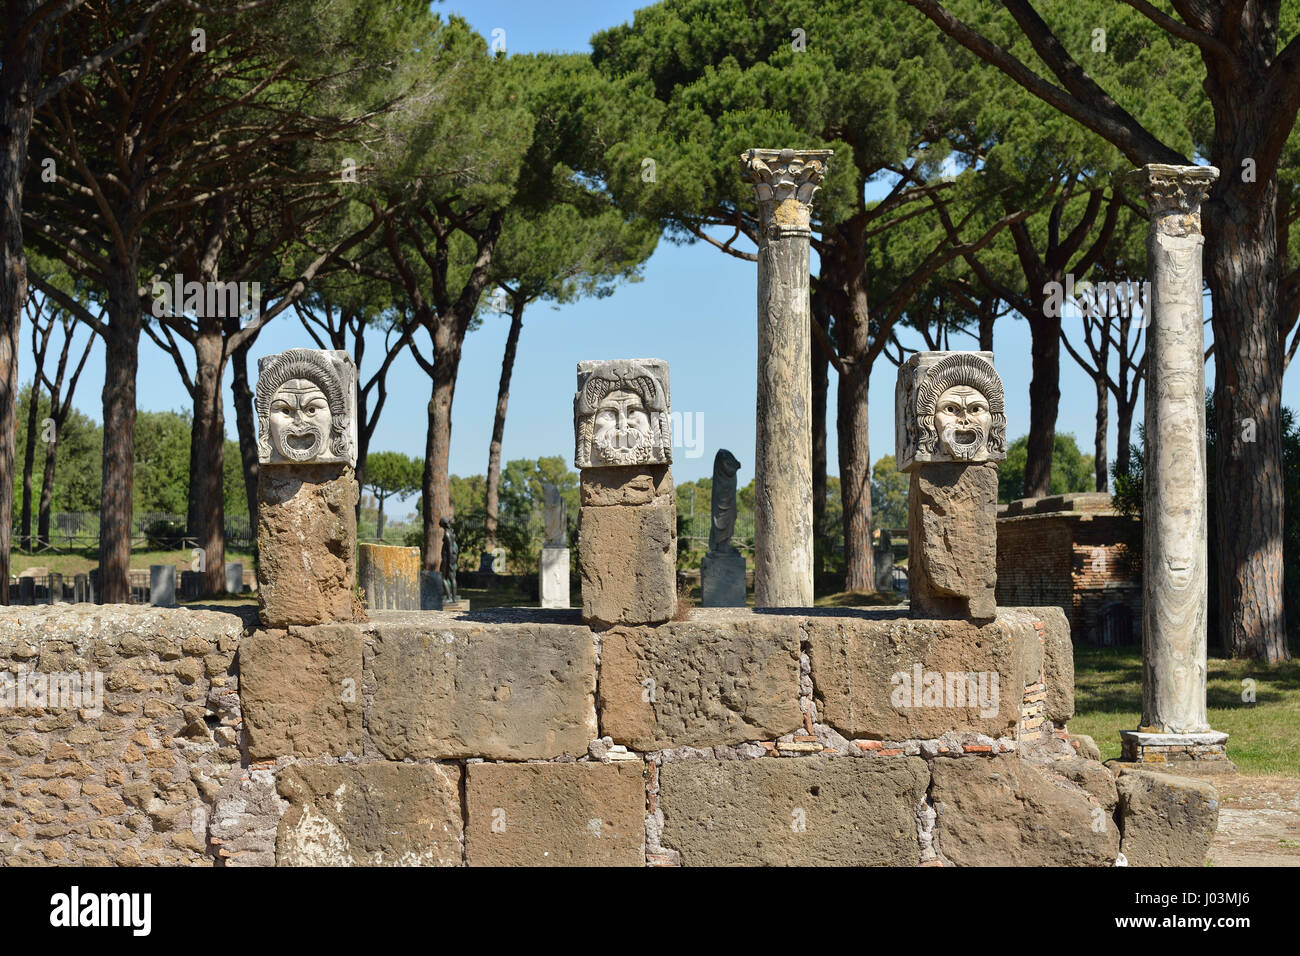 Rome. Italy. Ostia Antica. Marble theatrical masks at the rear of the theatre. - Stock Image